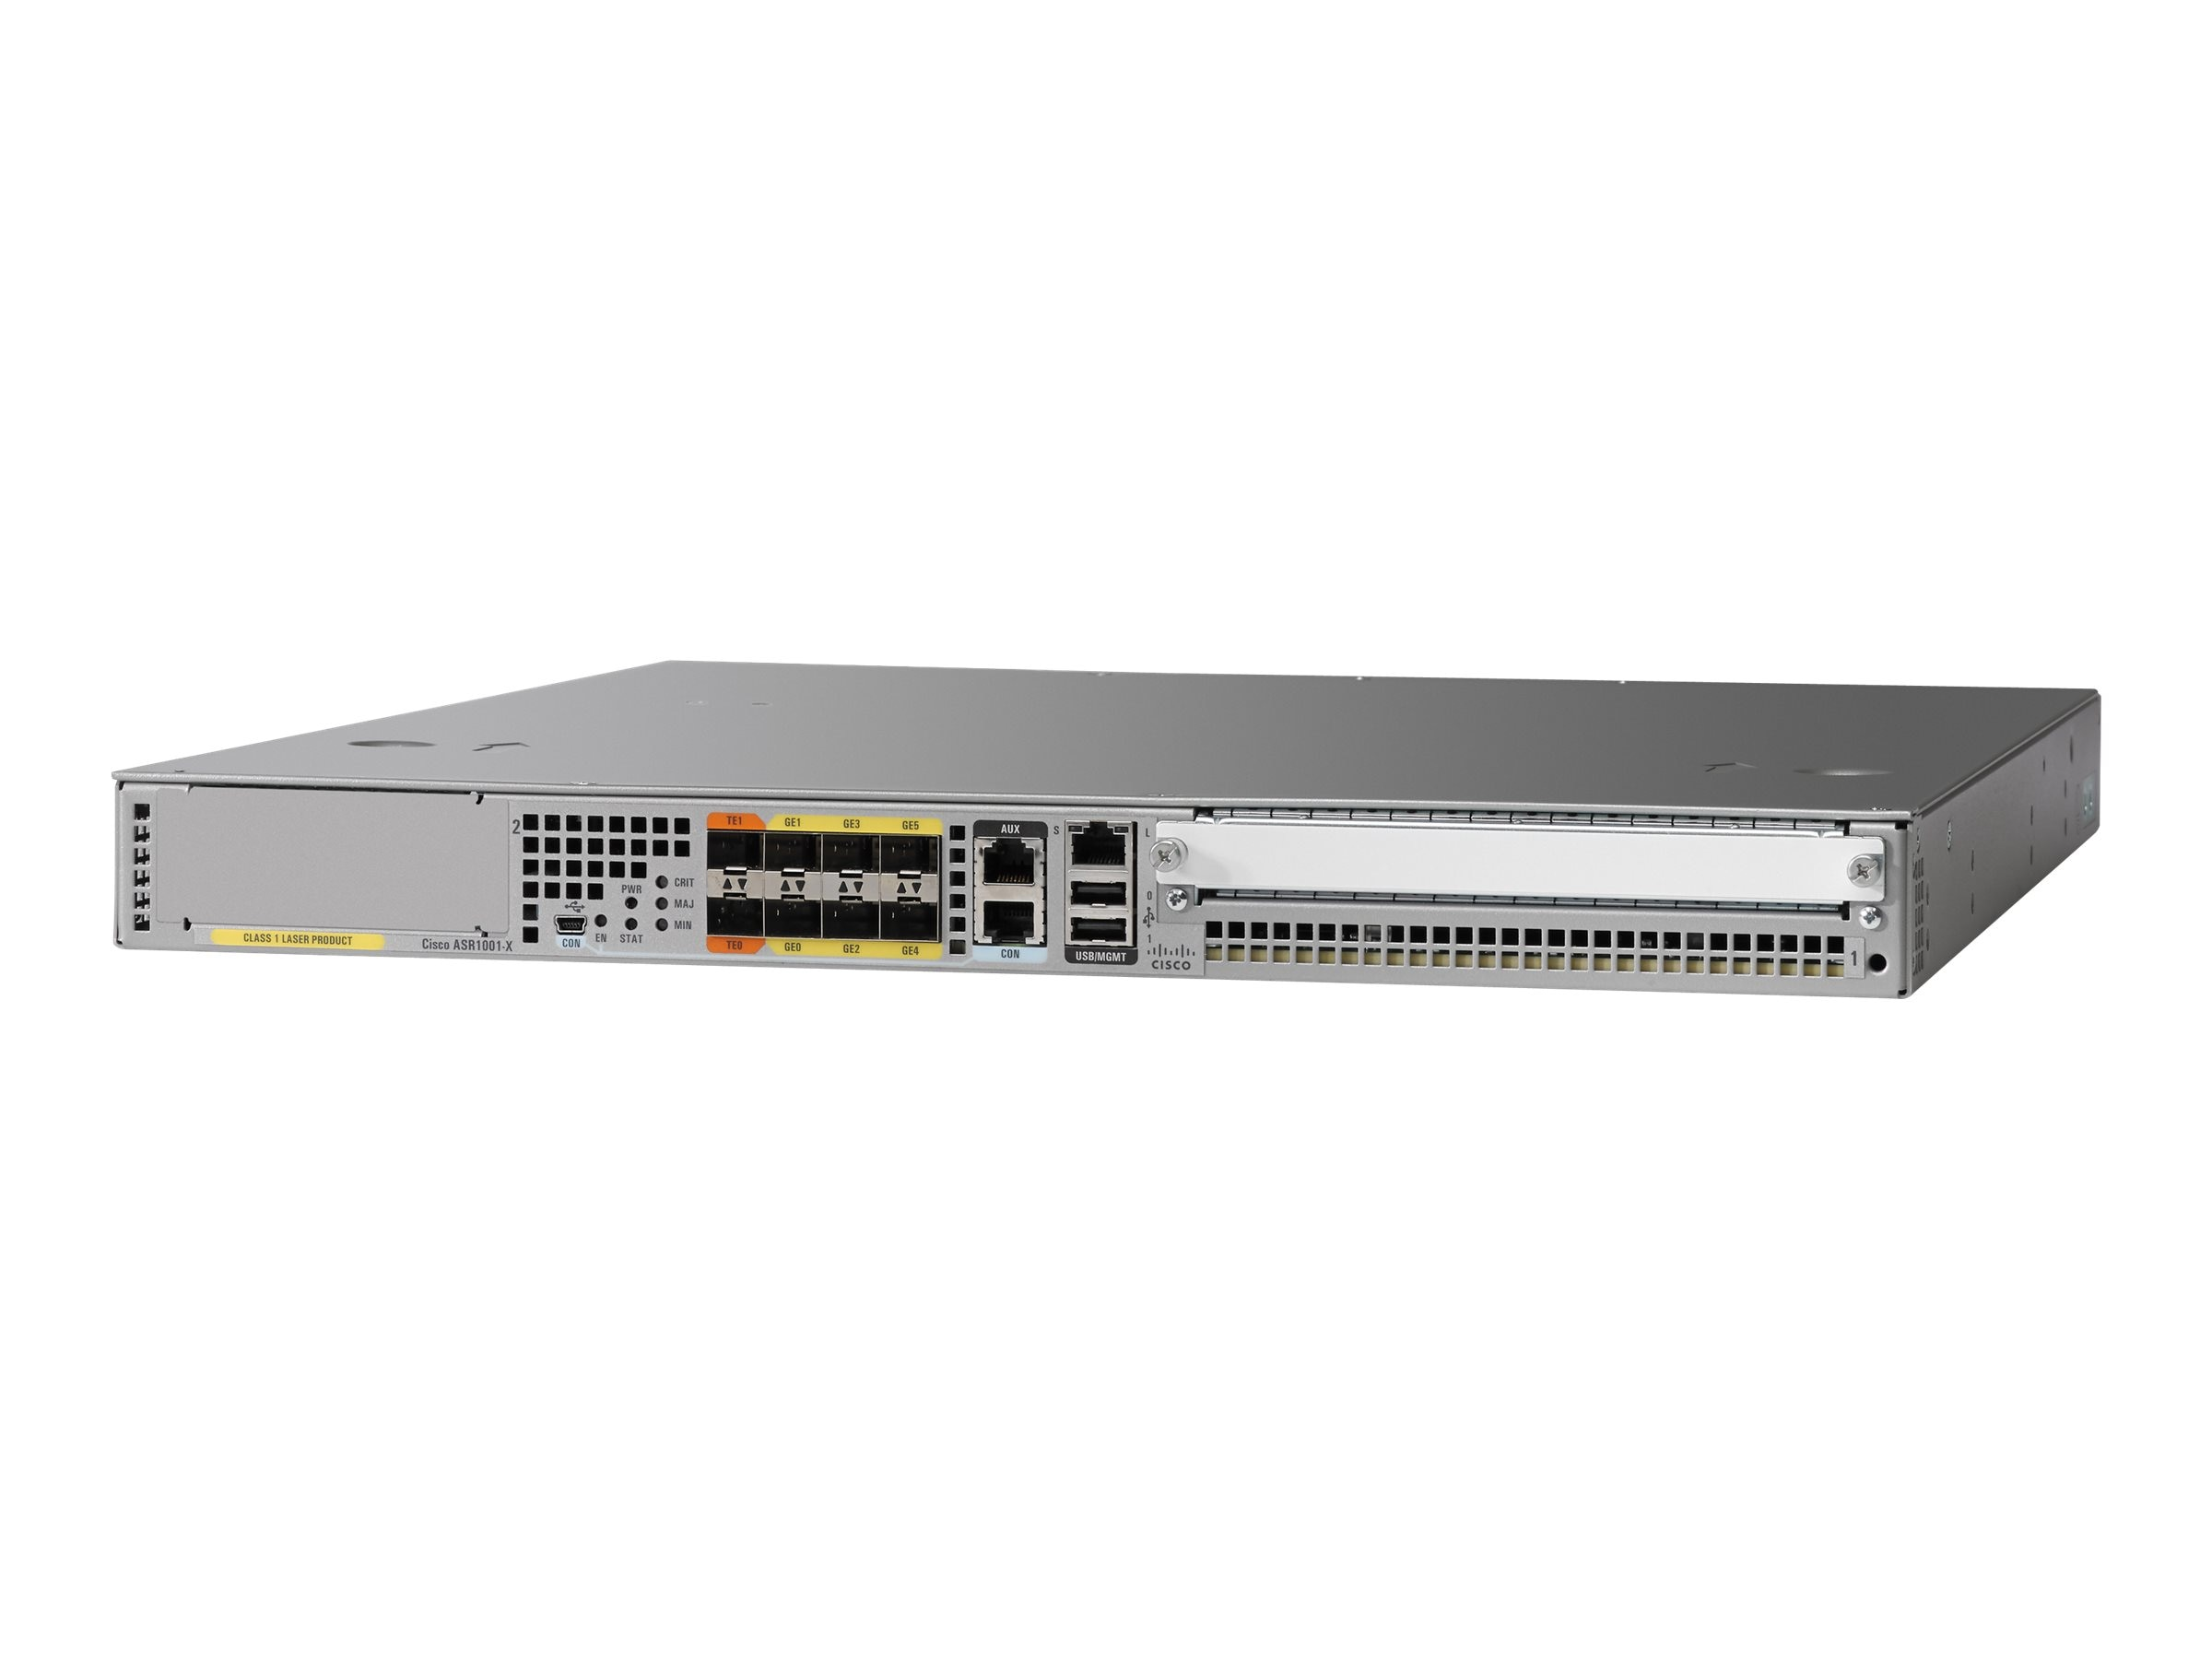 Cisco ASR1001-X 10G VPN Bundle K9 AES 6X1G, ASR1001X-10G-VPN, 24632029, Network Routers